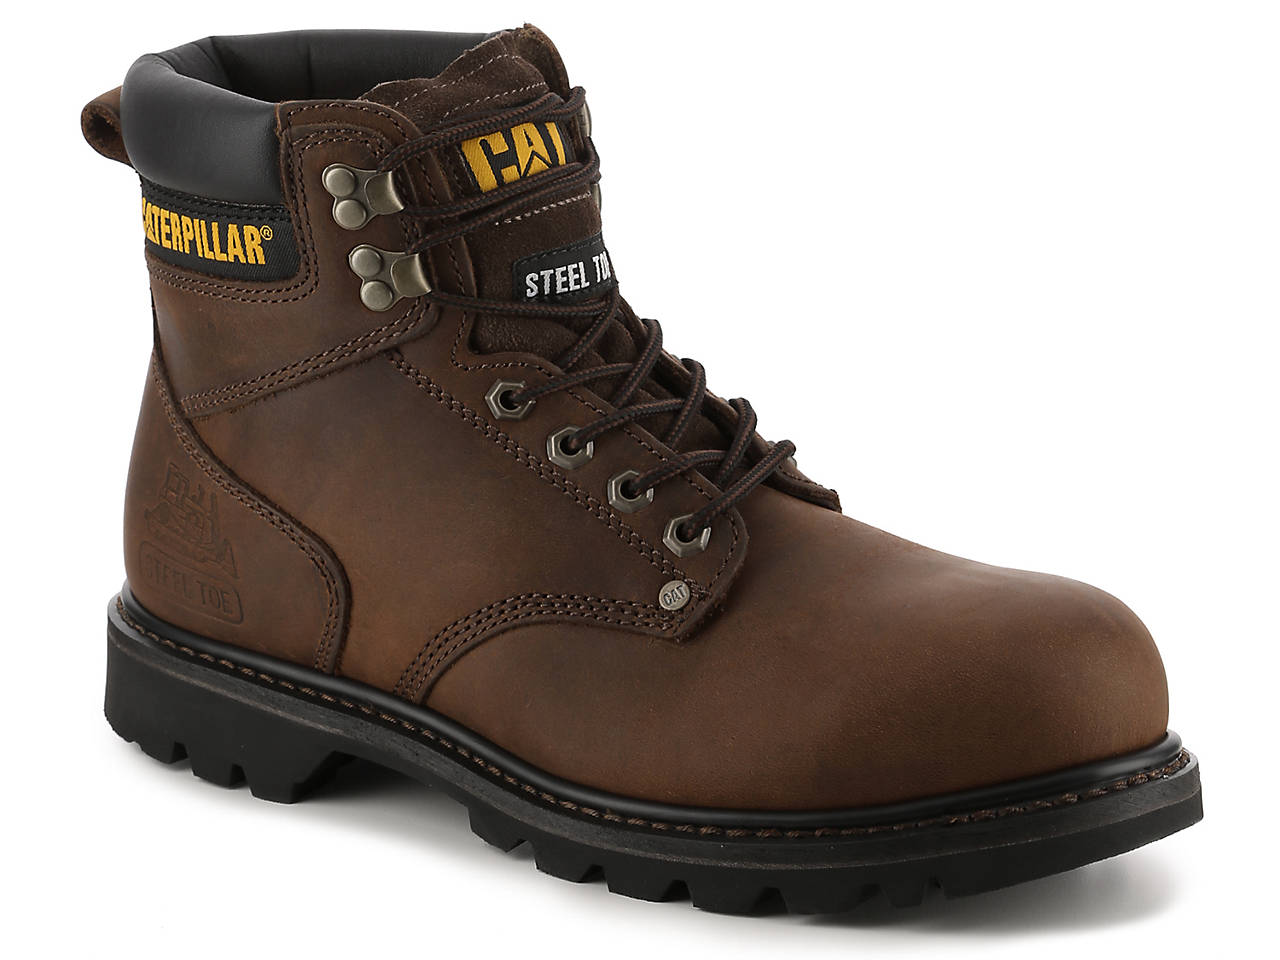 Caterpillar Second Shift Steel Toe Work Boot Mens Shoes Dsw